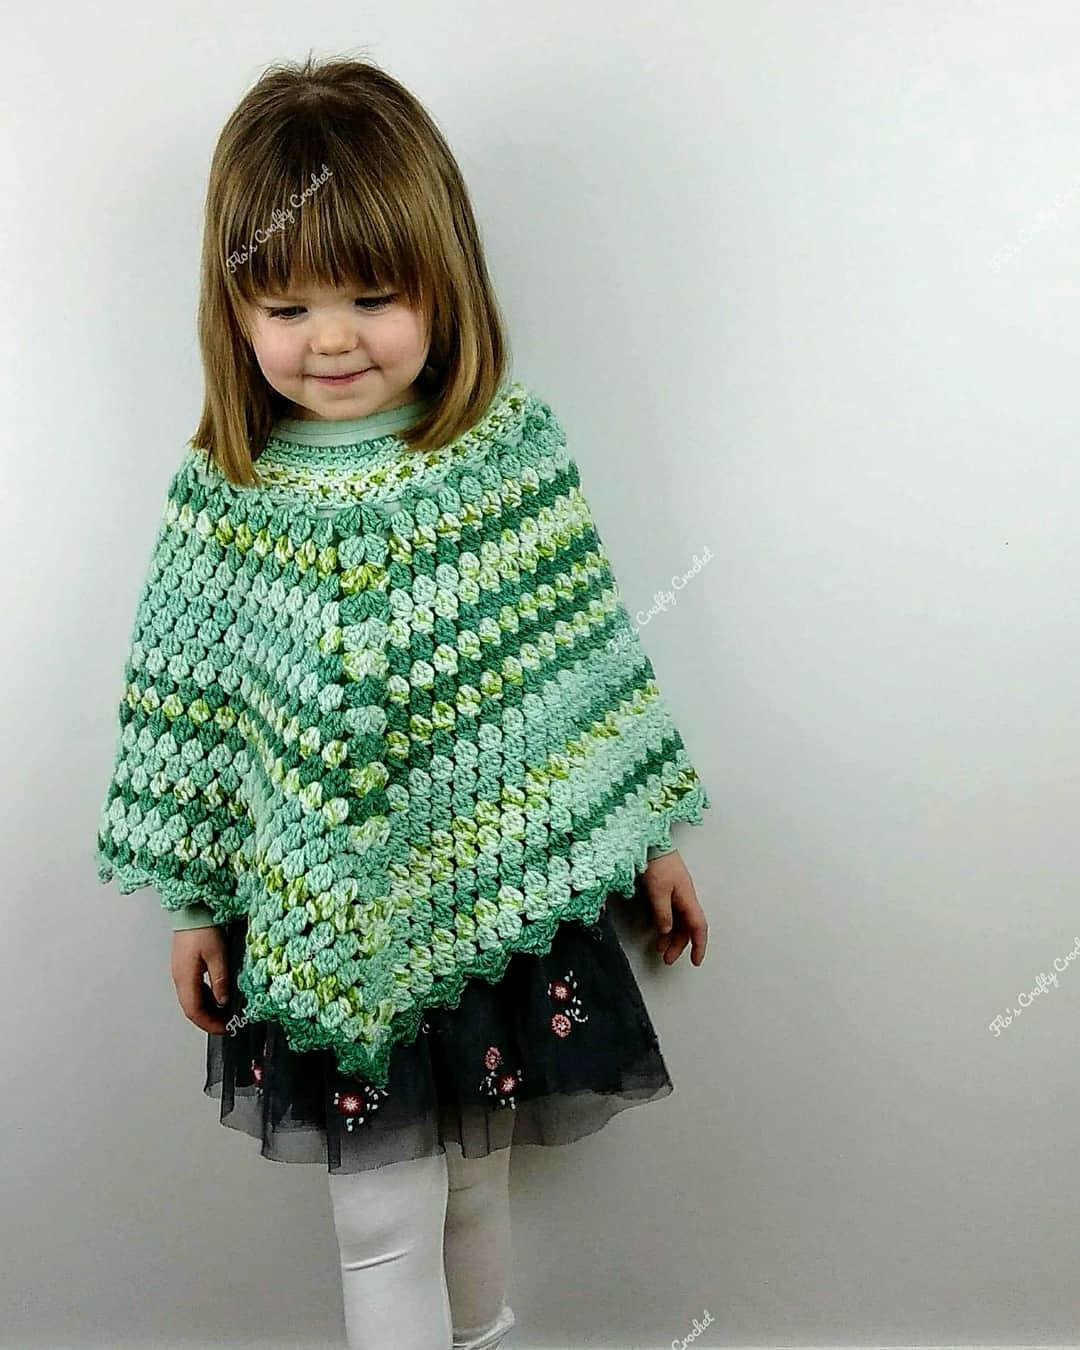 Vintage Style Crochet Baby Poncho Pom Pom Trim 1-2 Years Without Return Other Newborn-5t Girls Clothes